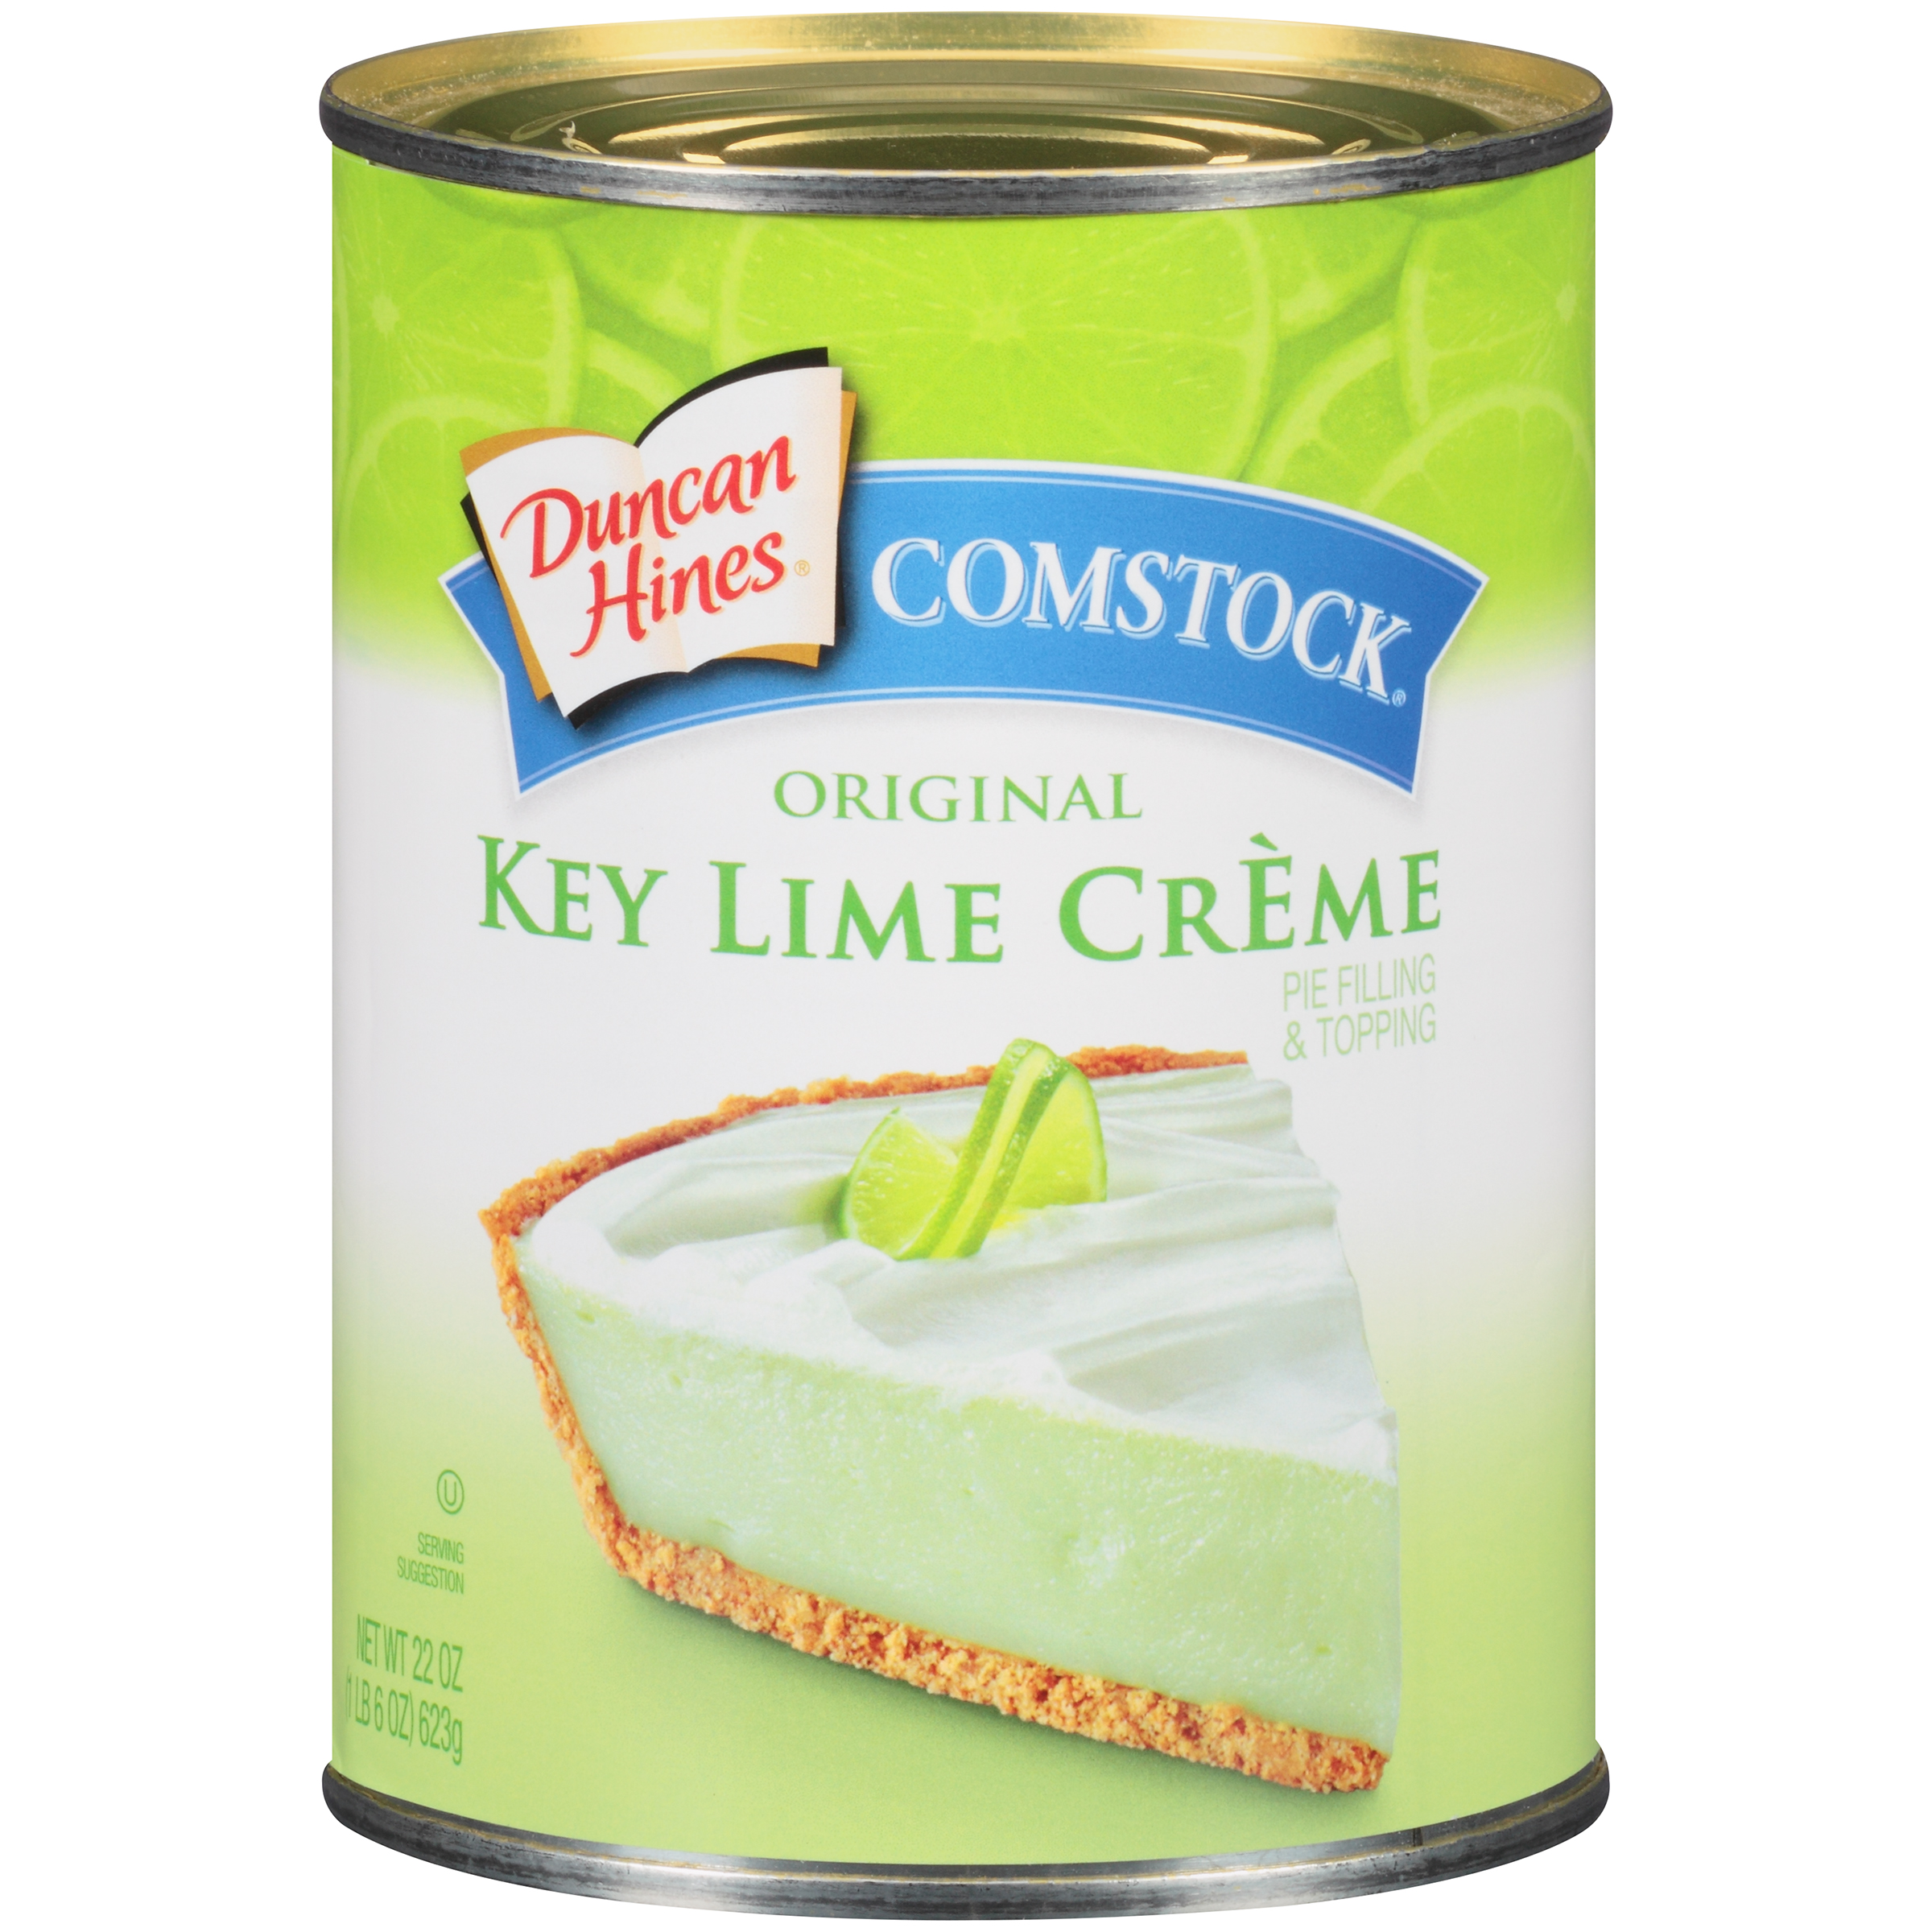 Duncan Hines® Comstock® Original Key Lime Creme Pie Filling & Topping 22 oz. Can